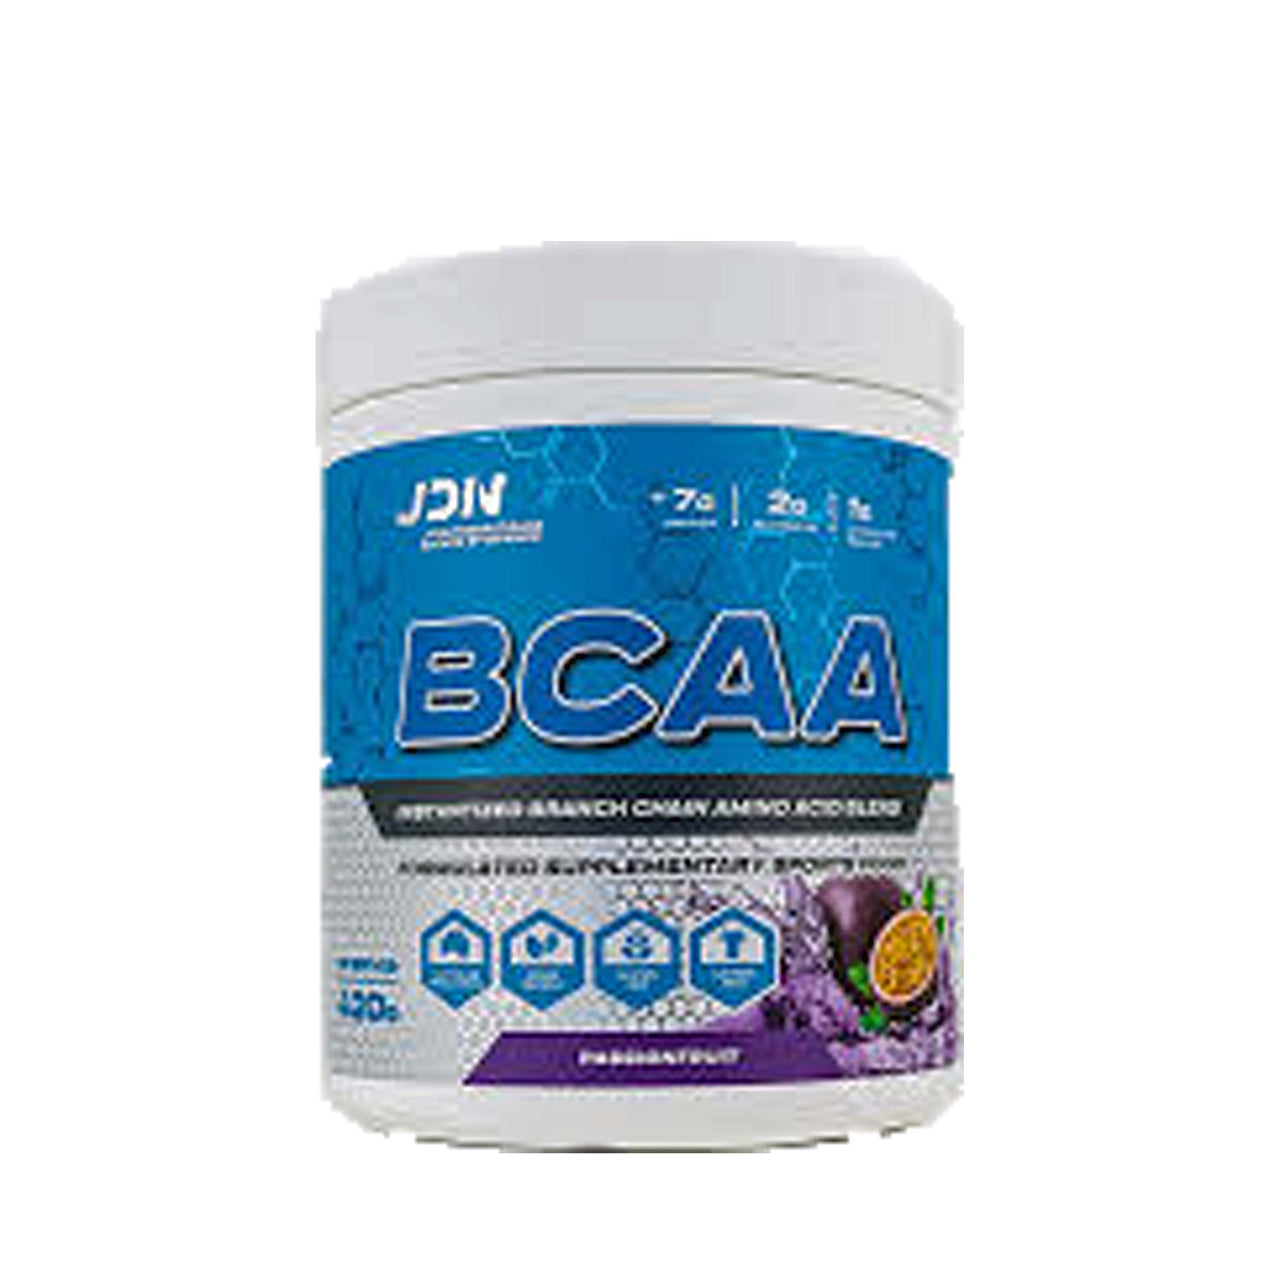 JDN BCAA, JD Nutraceuticals - Nutrition Co Australia